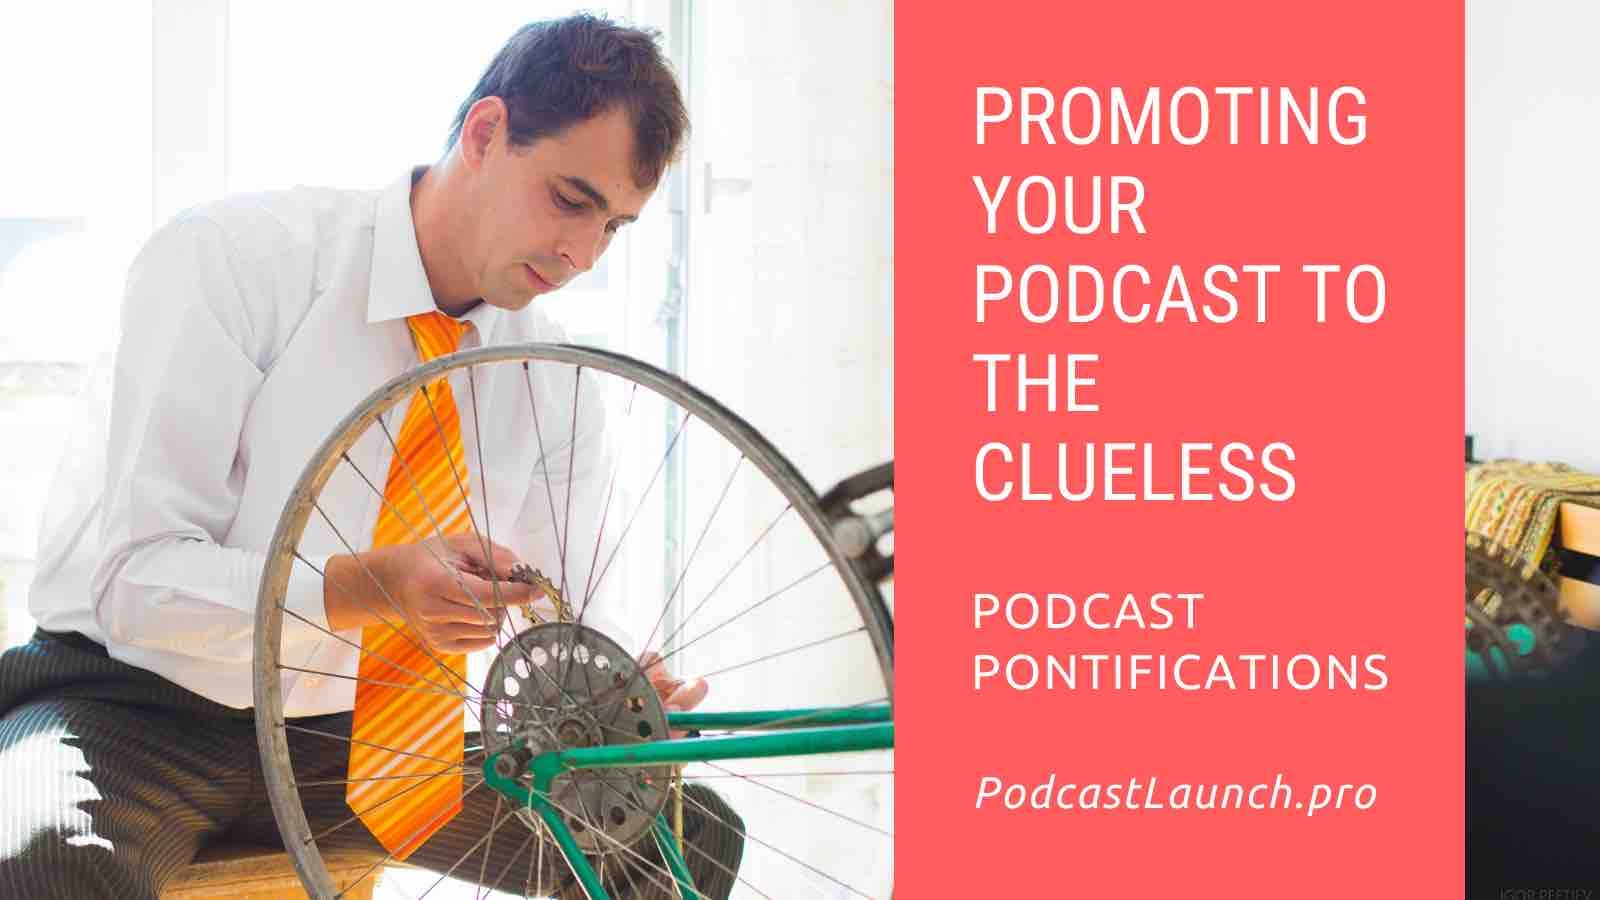 Promoting Your Podcast To The Clueless